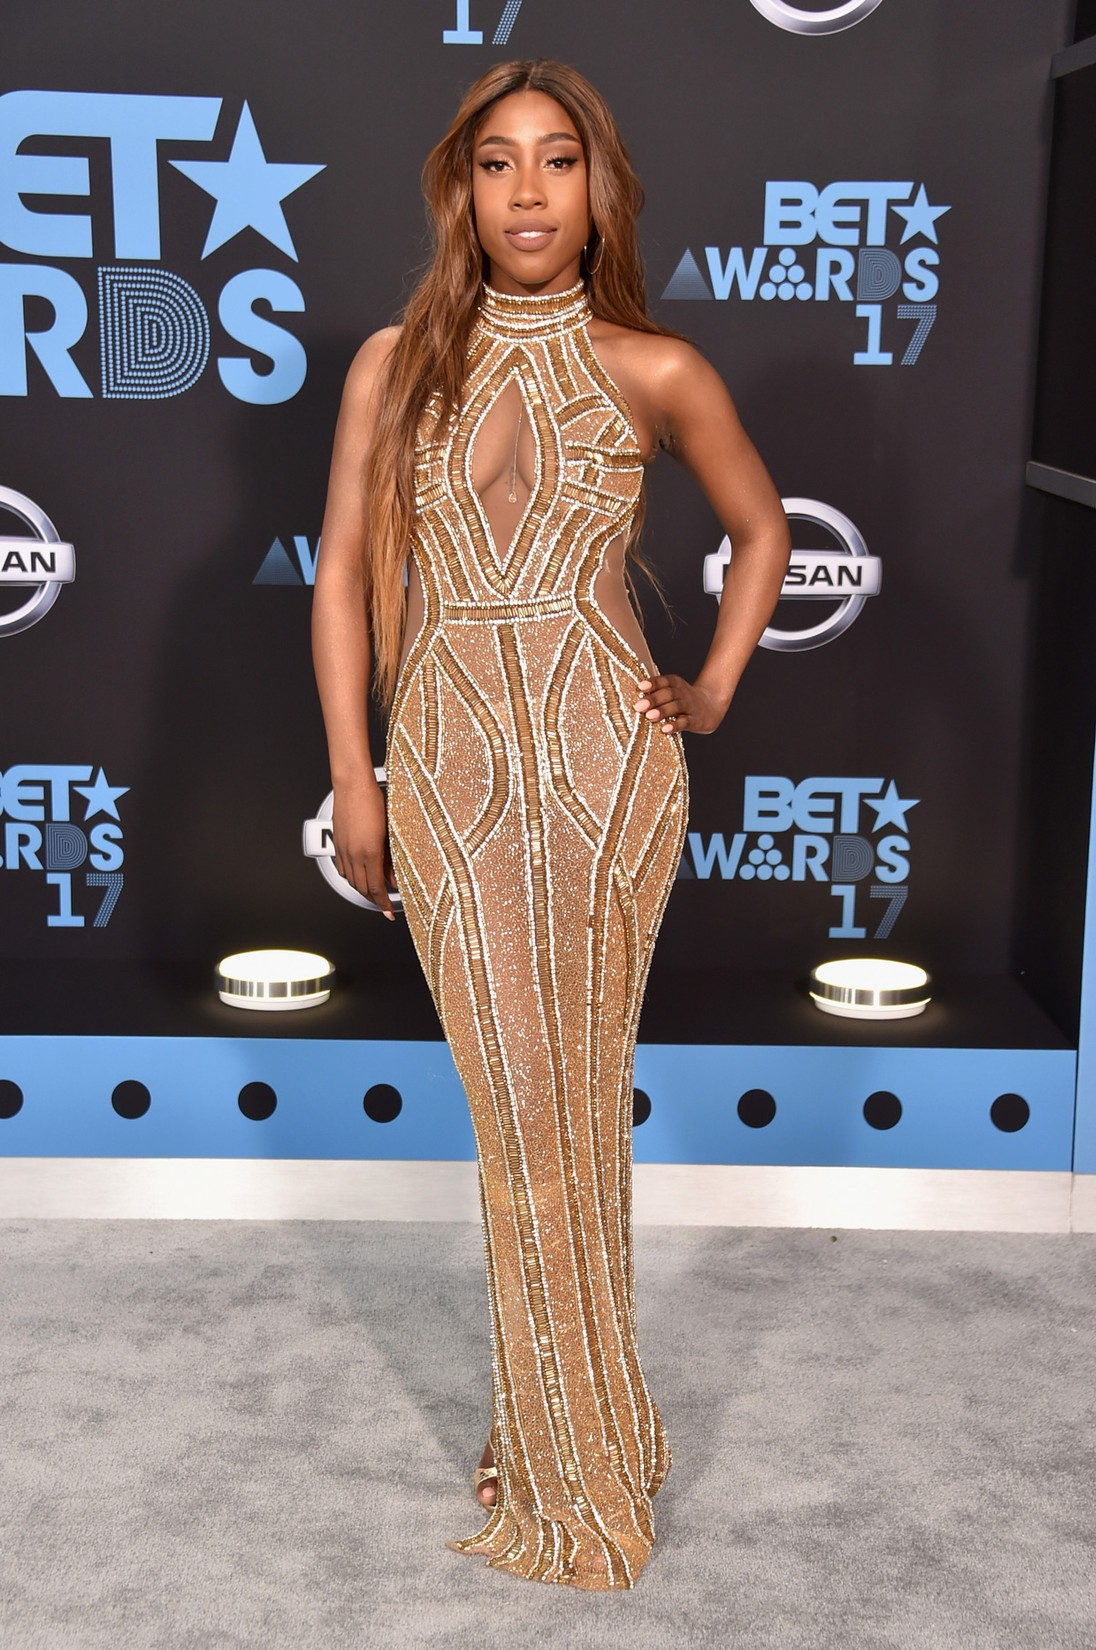 Sevyn Streeter at the 2017 BET Awards at Microsoft Square on June 25, 2017 in Los Angeles.